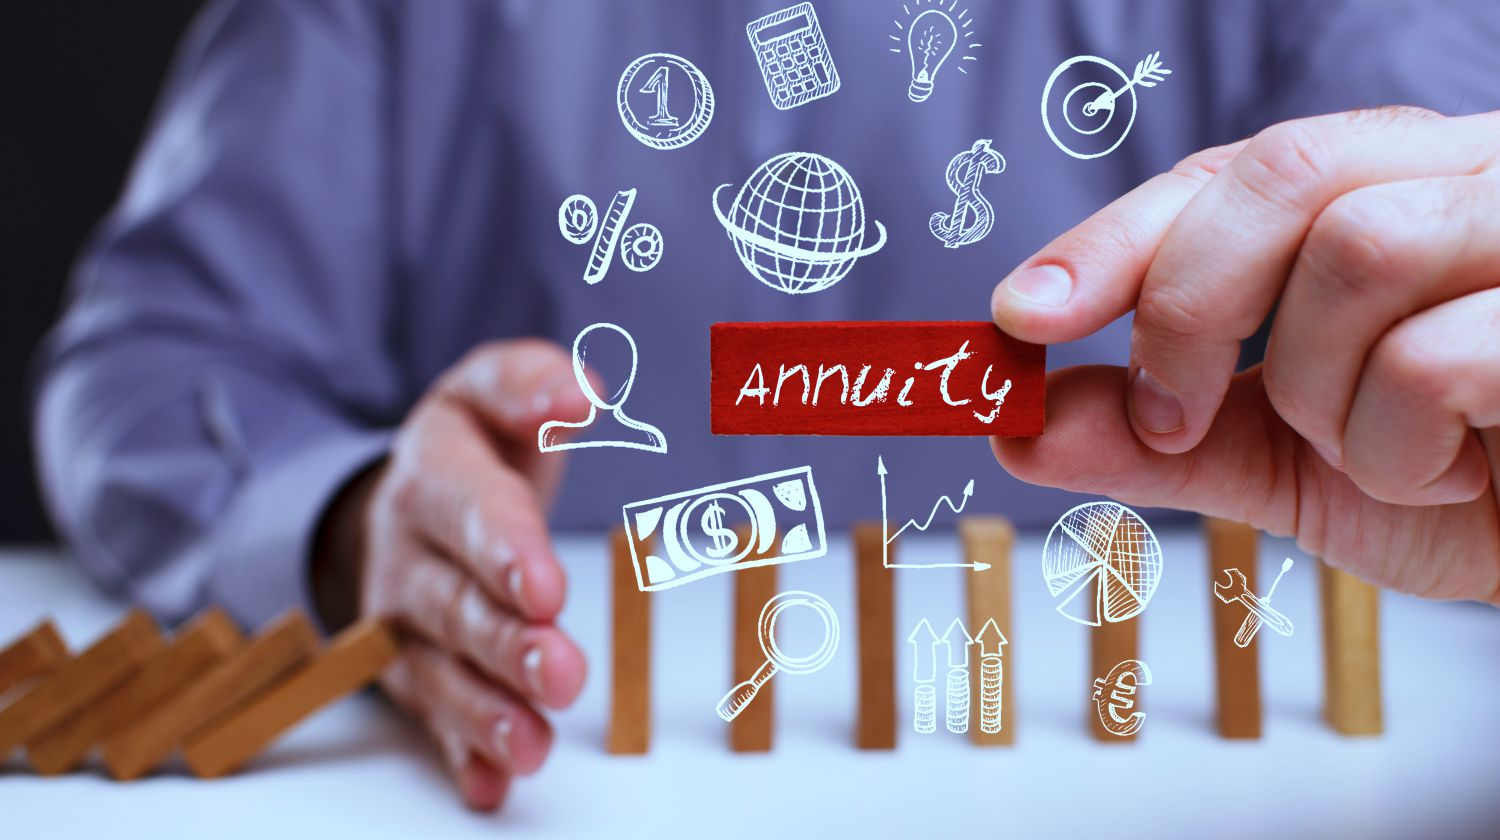 Feature | annuity written on block | What Is An Annuity and How Does It Differ From An IRA? | annuity